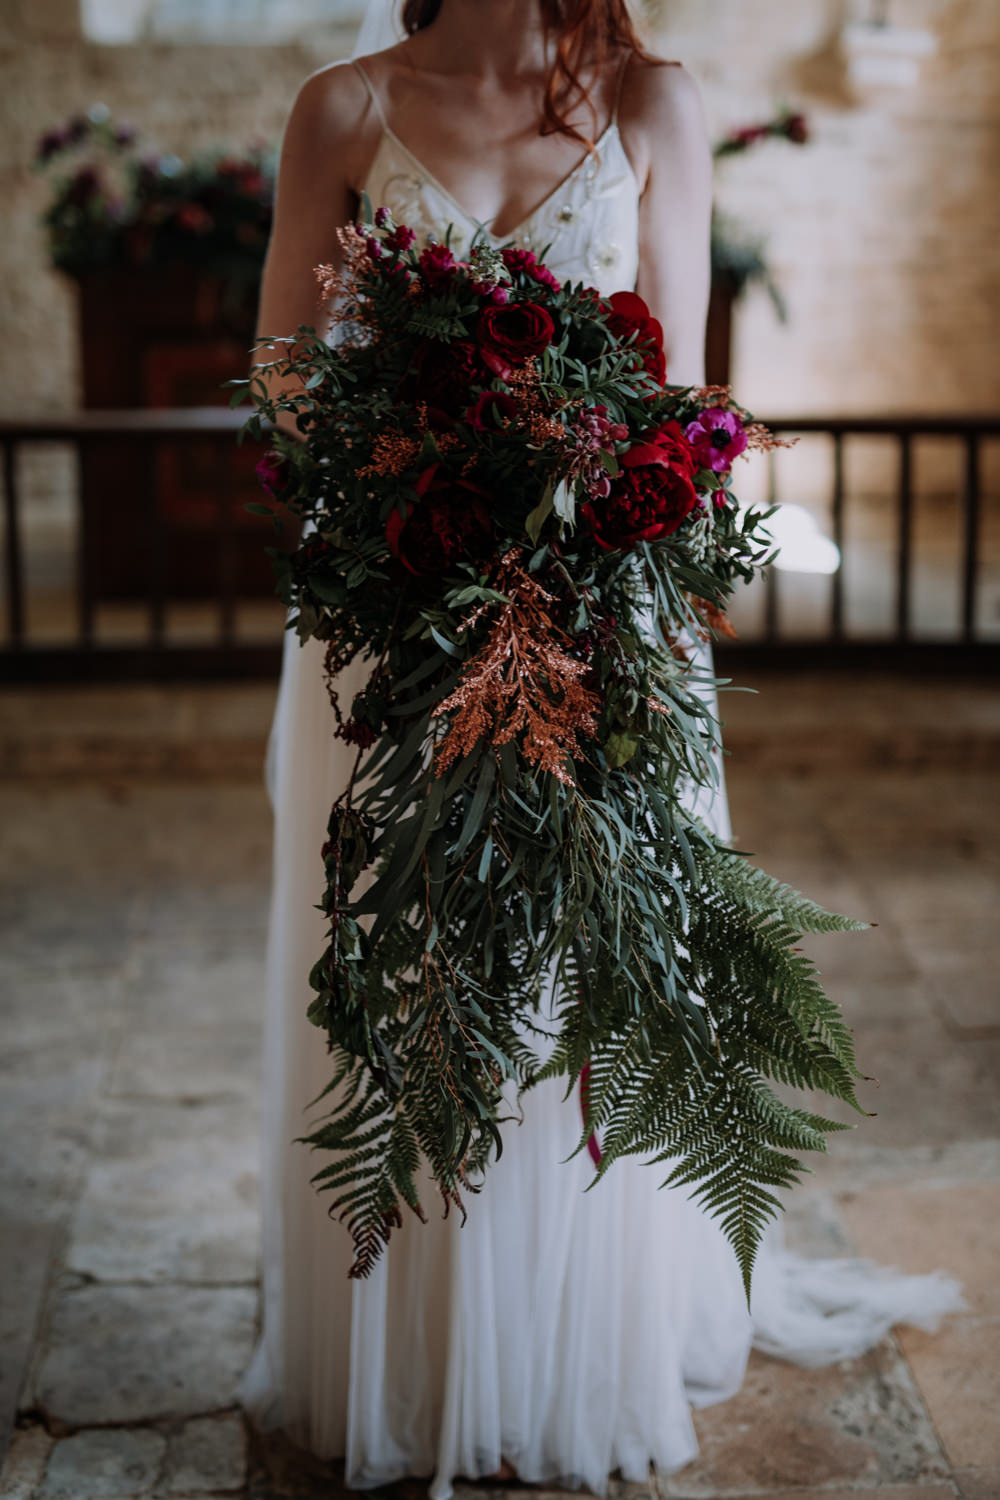 Bouquet Flowers Bride Bridal Large Cascading Oversized Greenery Foliage Burgundy Peony Peonies Ferns Industrial Luxe Wedding Ideas Balloon Installation Ayelle Photography